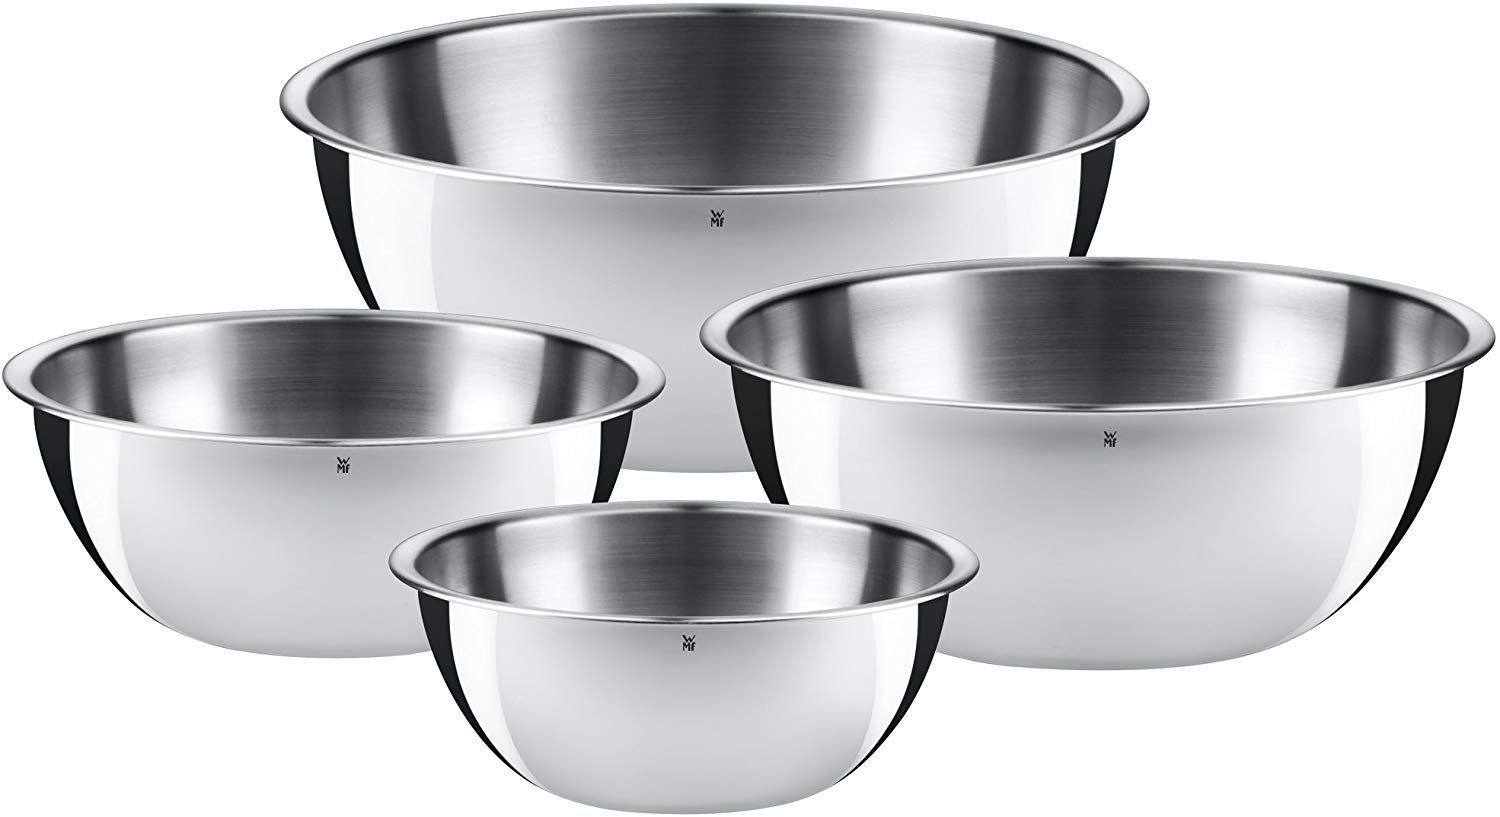 WMF 645709990 Gourmet Bowl Set for Kitchen 4-Piece, Cromargan Stainless Steel, Multifunctional, Mixing Bowl, Serving Bowl, Stackable